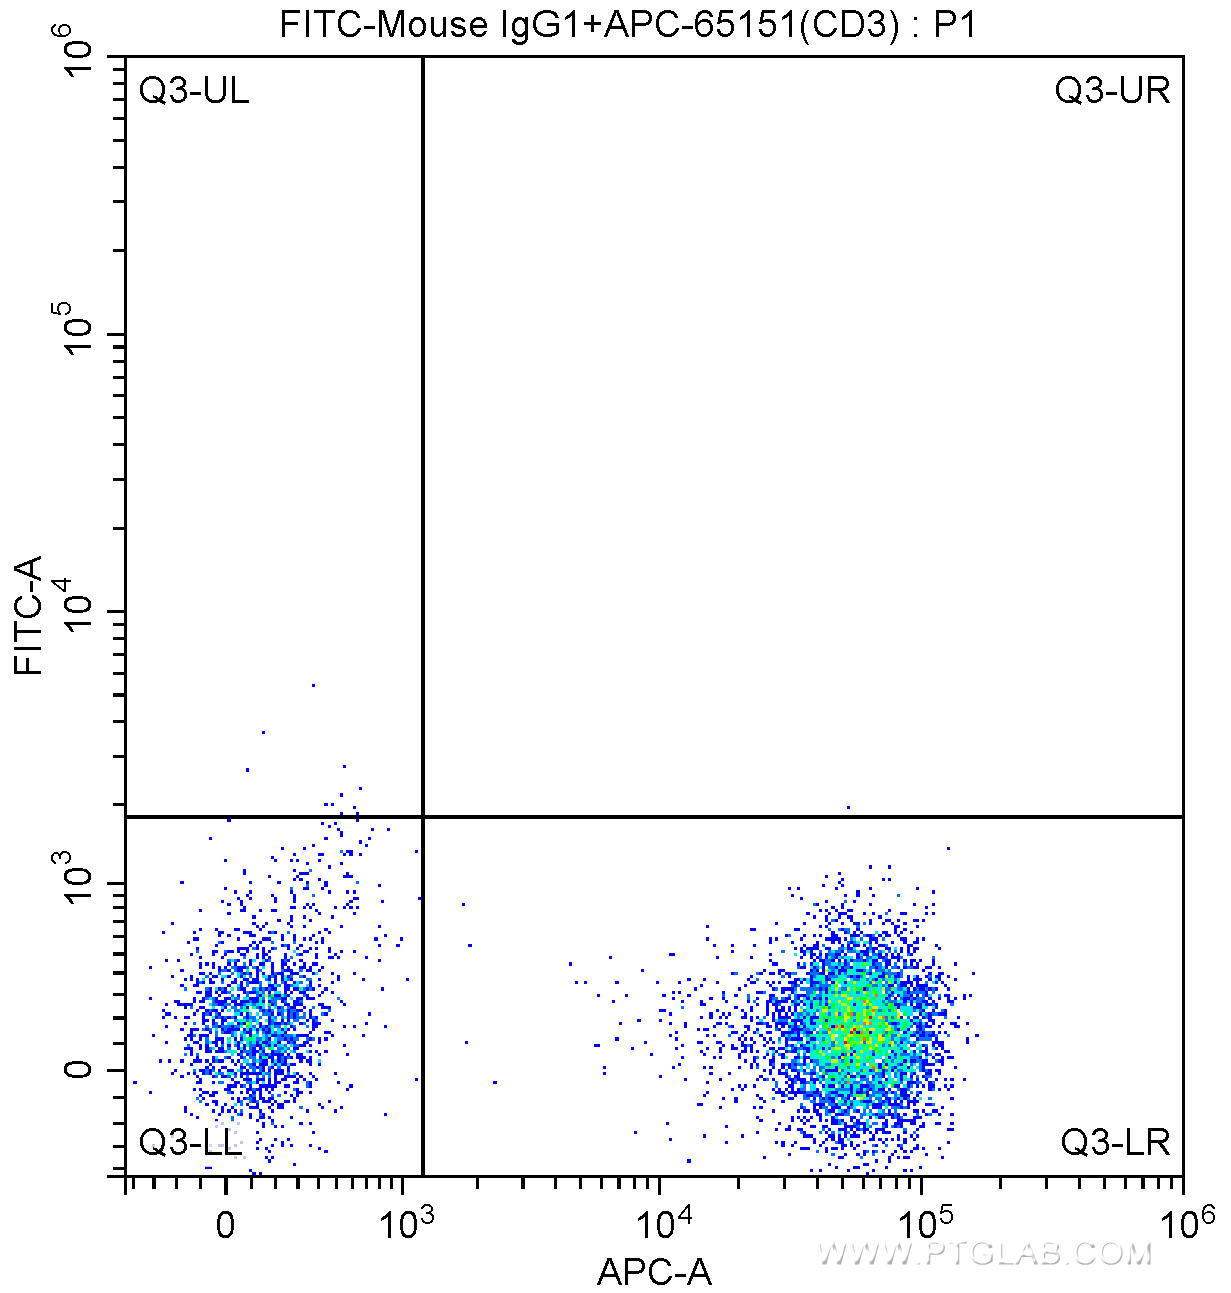 100 ul human peripheral blood were surface stained with APC Anti-Human CD3 (APC-65151, Clone: UCHT1) and FITC Mouse IgG1 isotype control antibody. Lymphocytes were gated for analysis. Cells were not fixed.